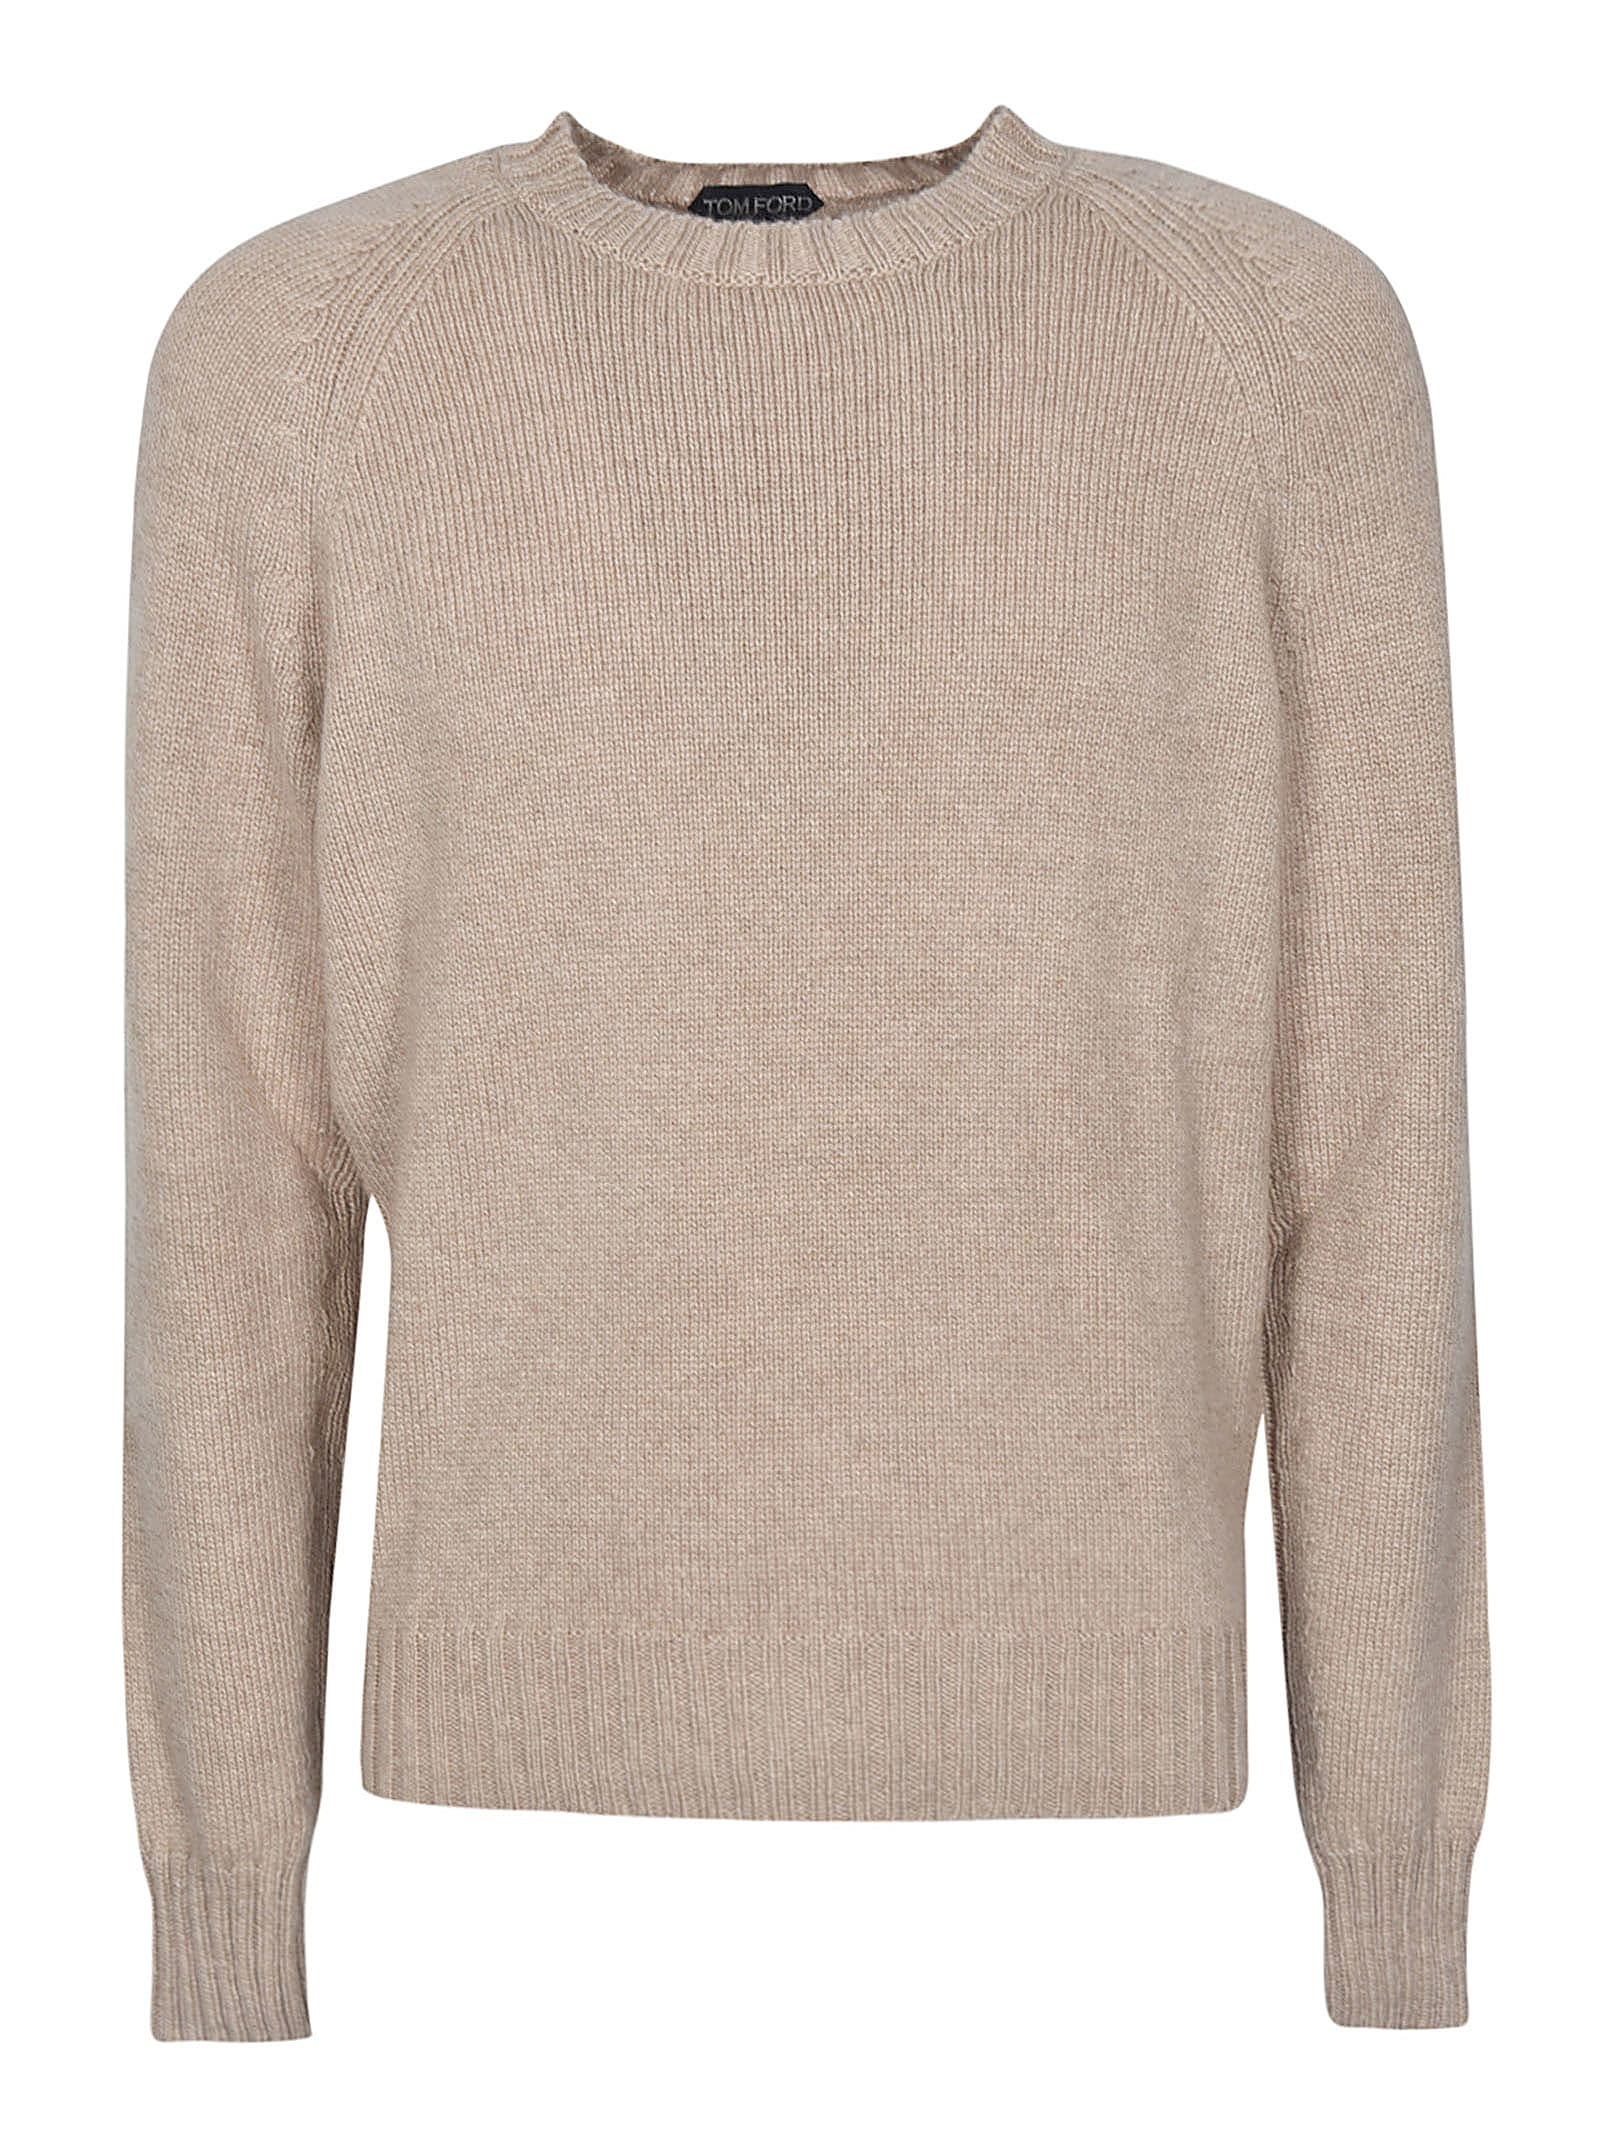 Ribbed Round Neck Sweater